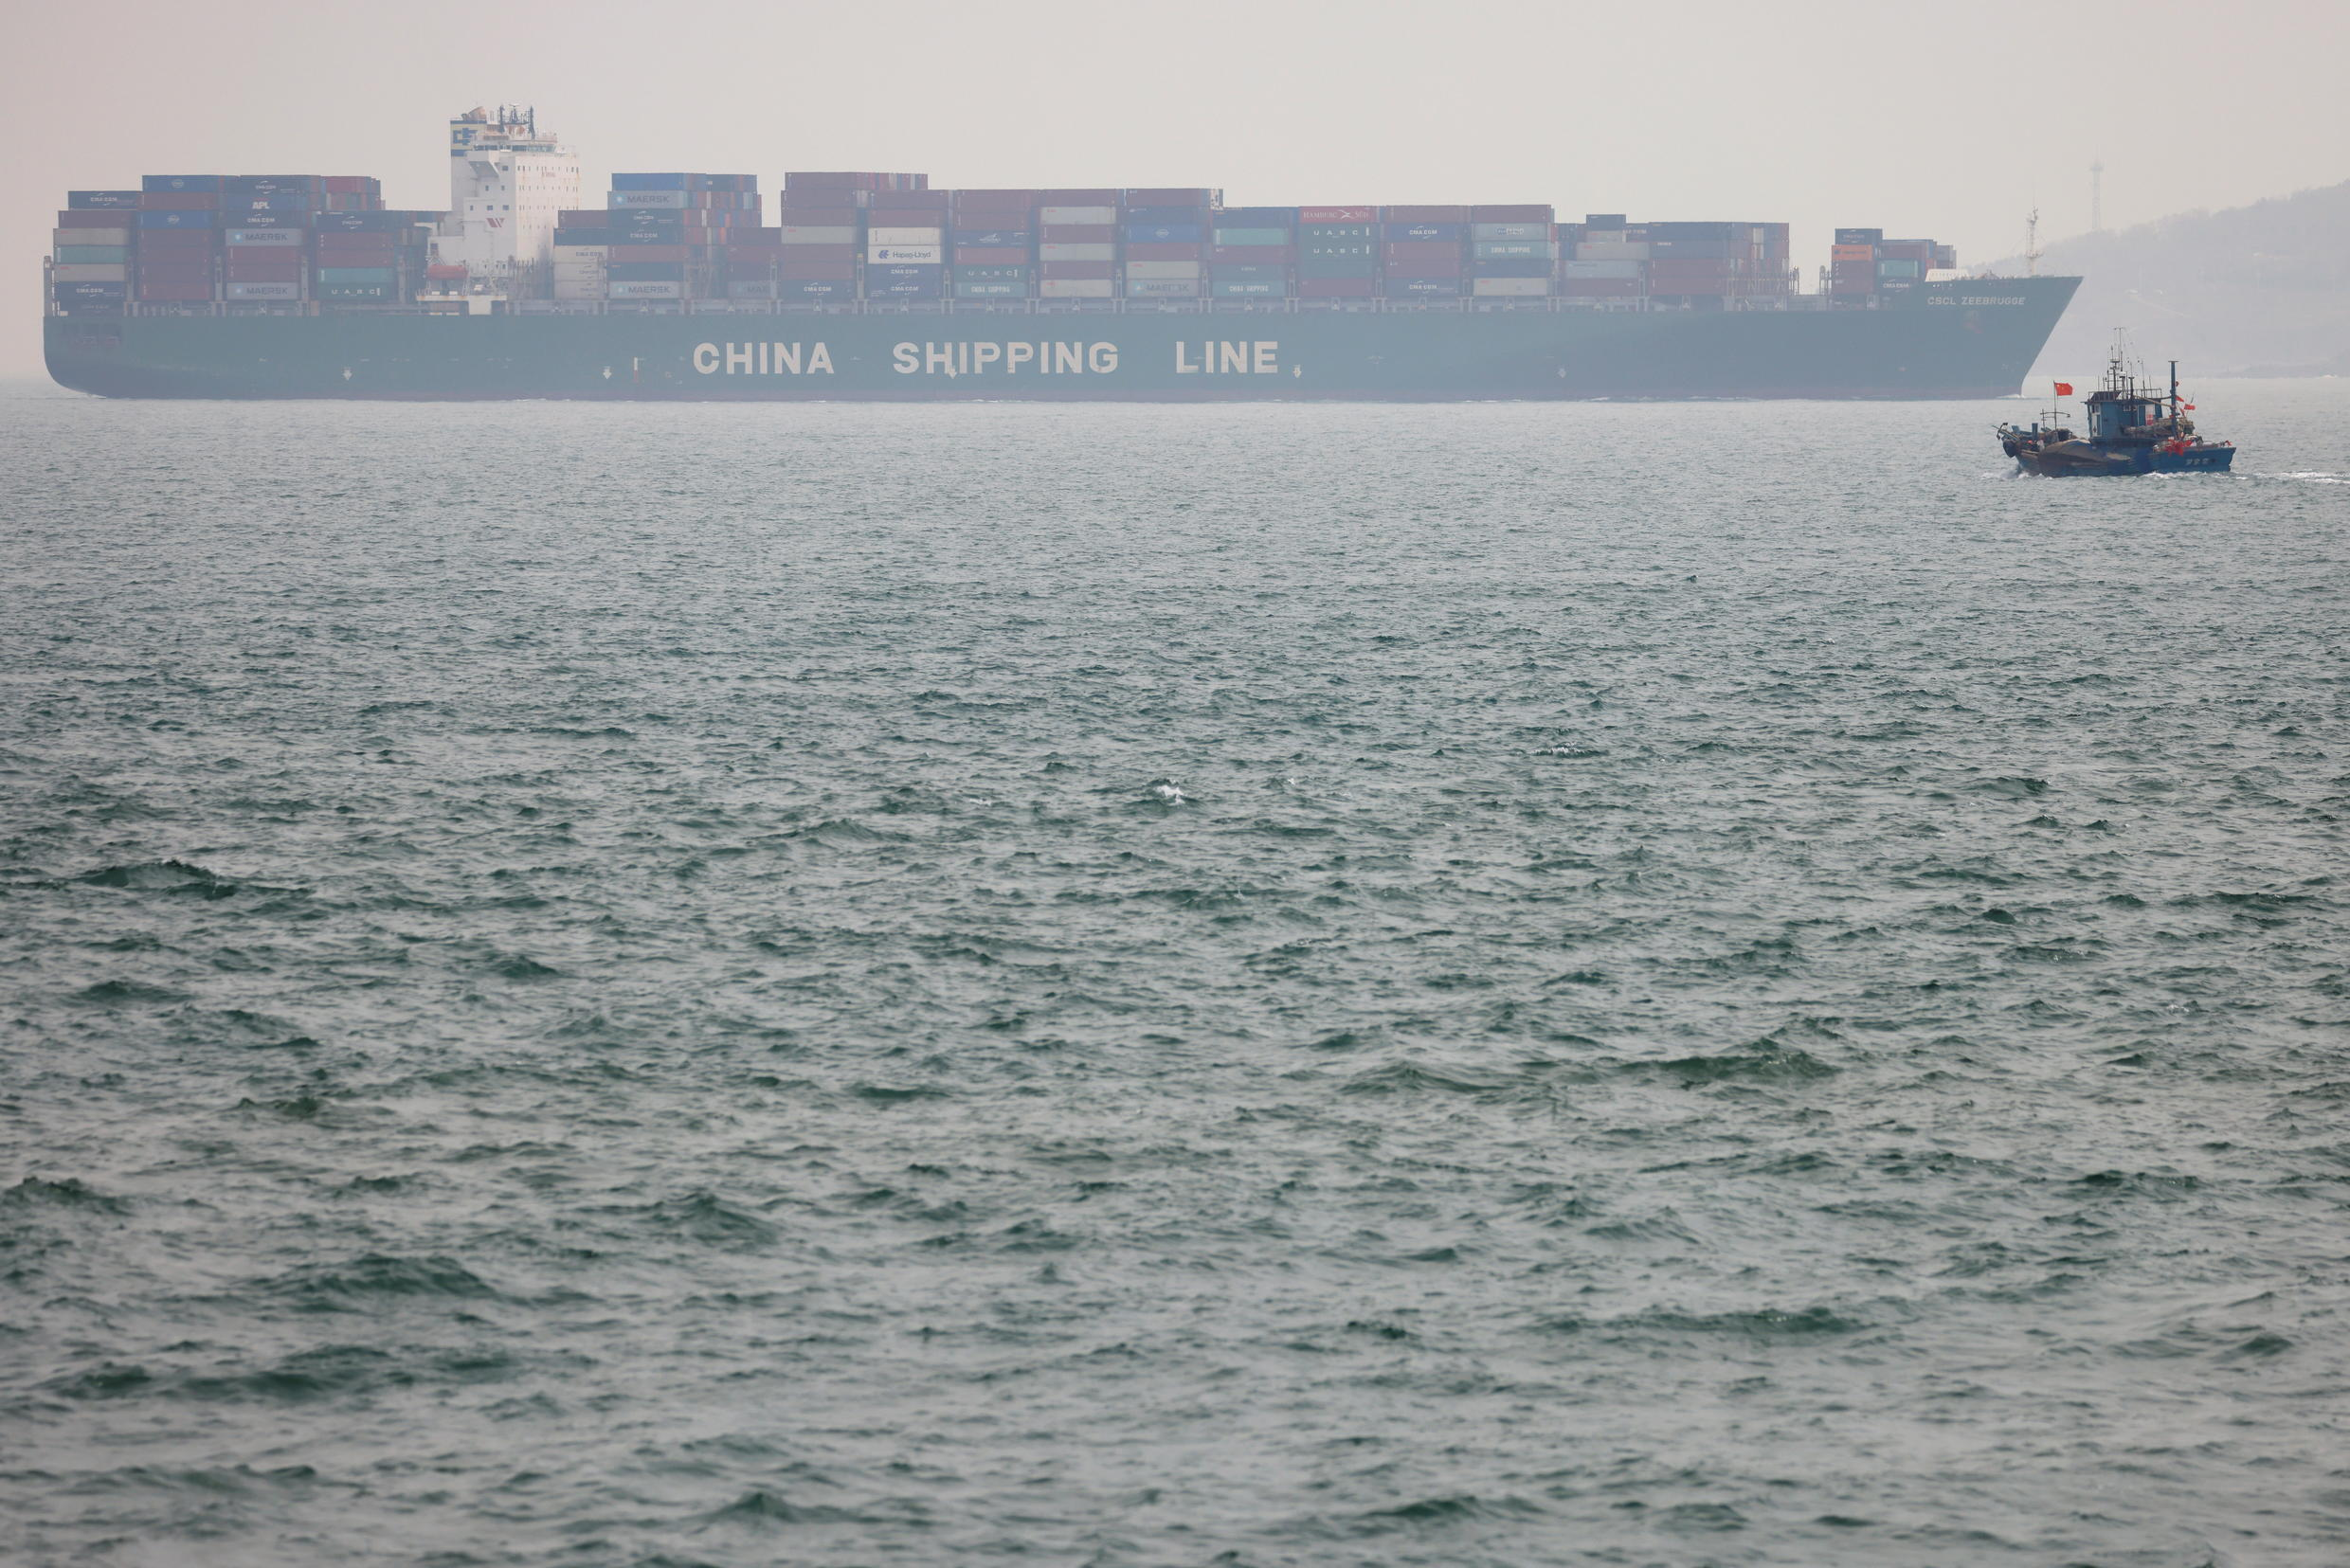 2021-04-29T052752Z_268306770_RC2H5N9UEF5A_RTRMADP_3_CHINA-OIL-SPILL